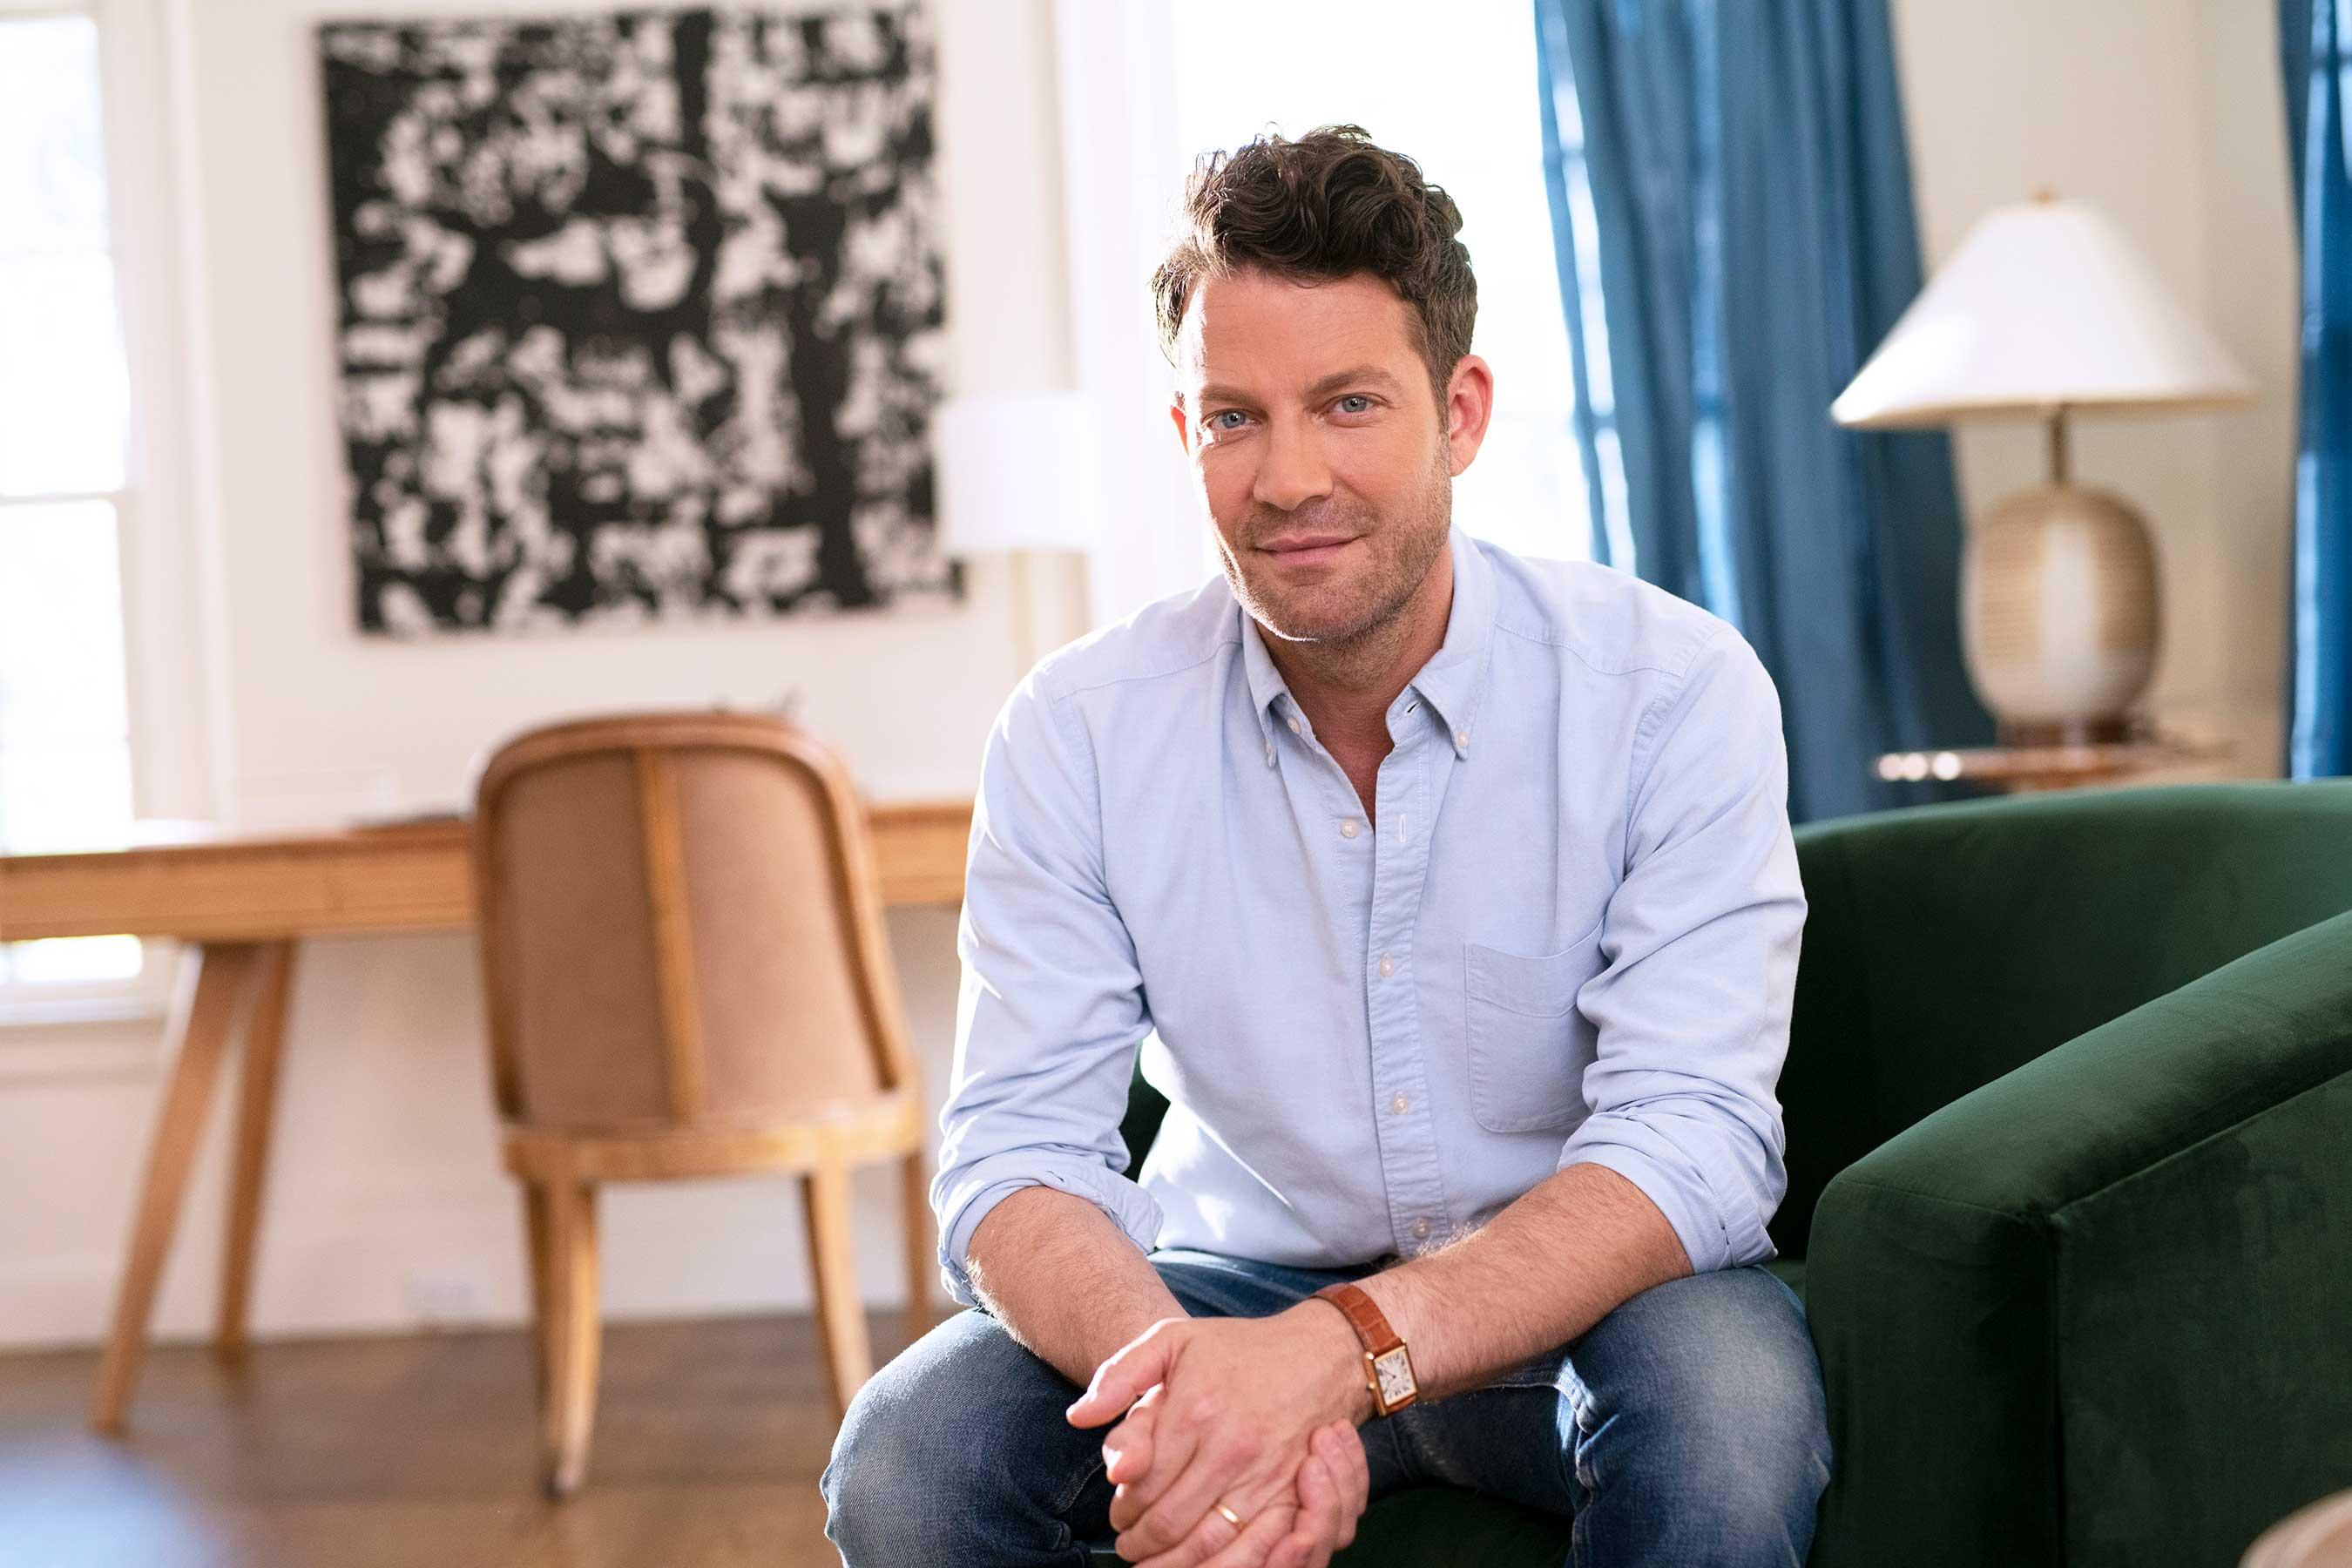 Novartis Teams Up With Celebrity Interior Designer Nate Berkus To Launch My Home In Sight, A Program Empowering People With Wet AMD To Live More Independently At Home